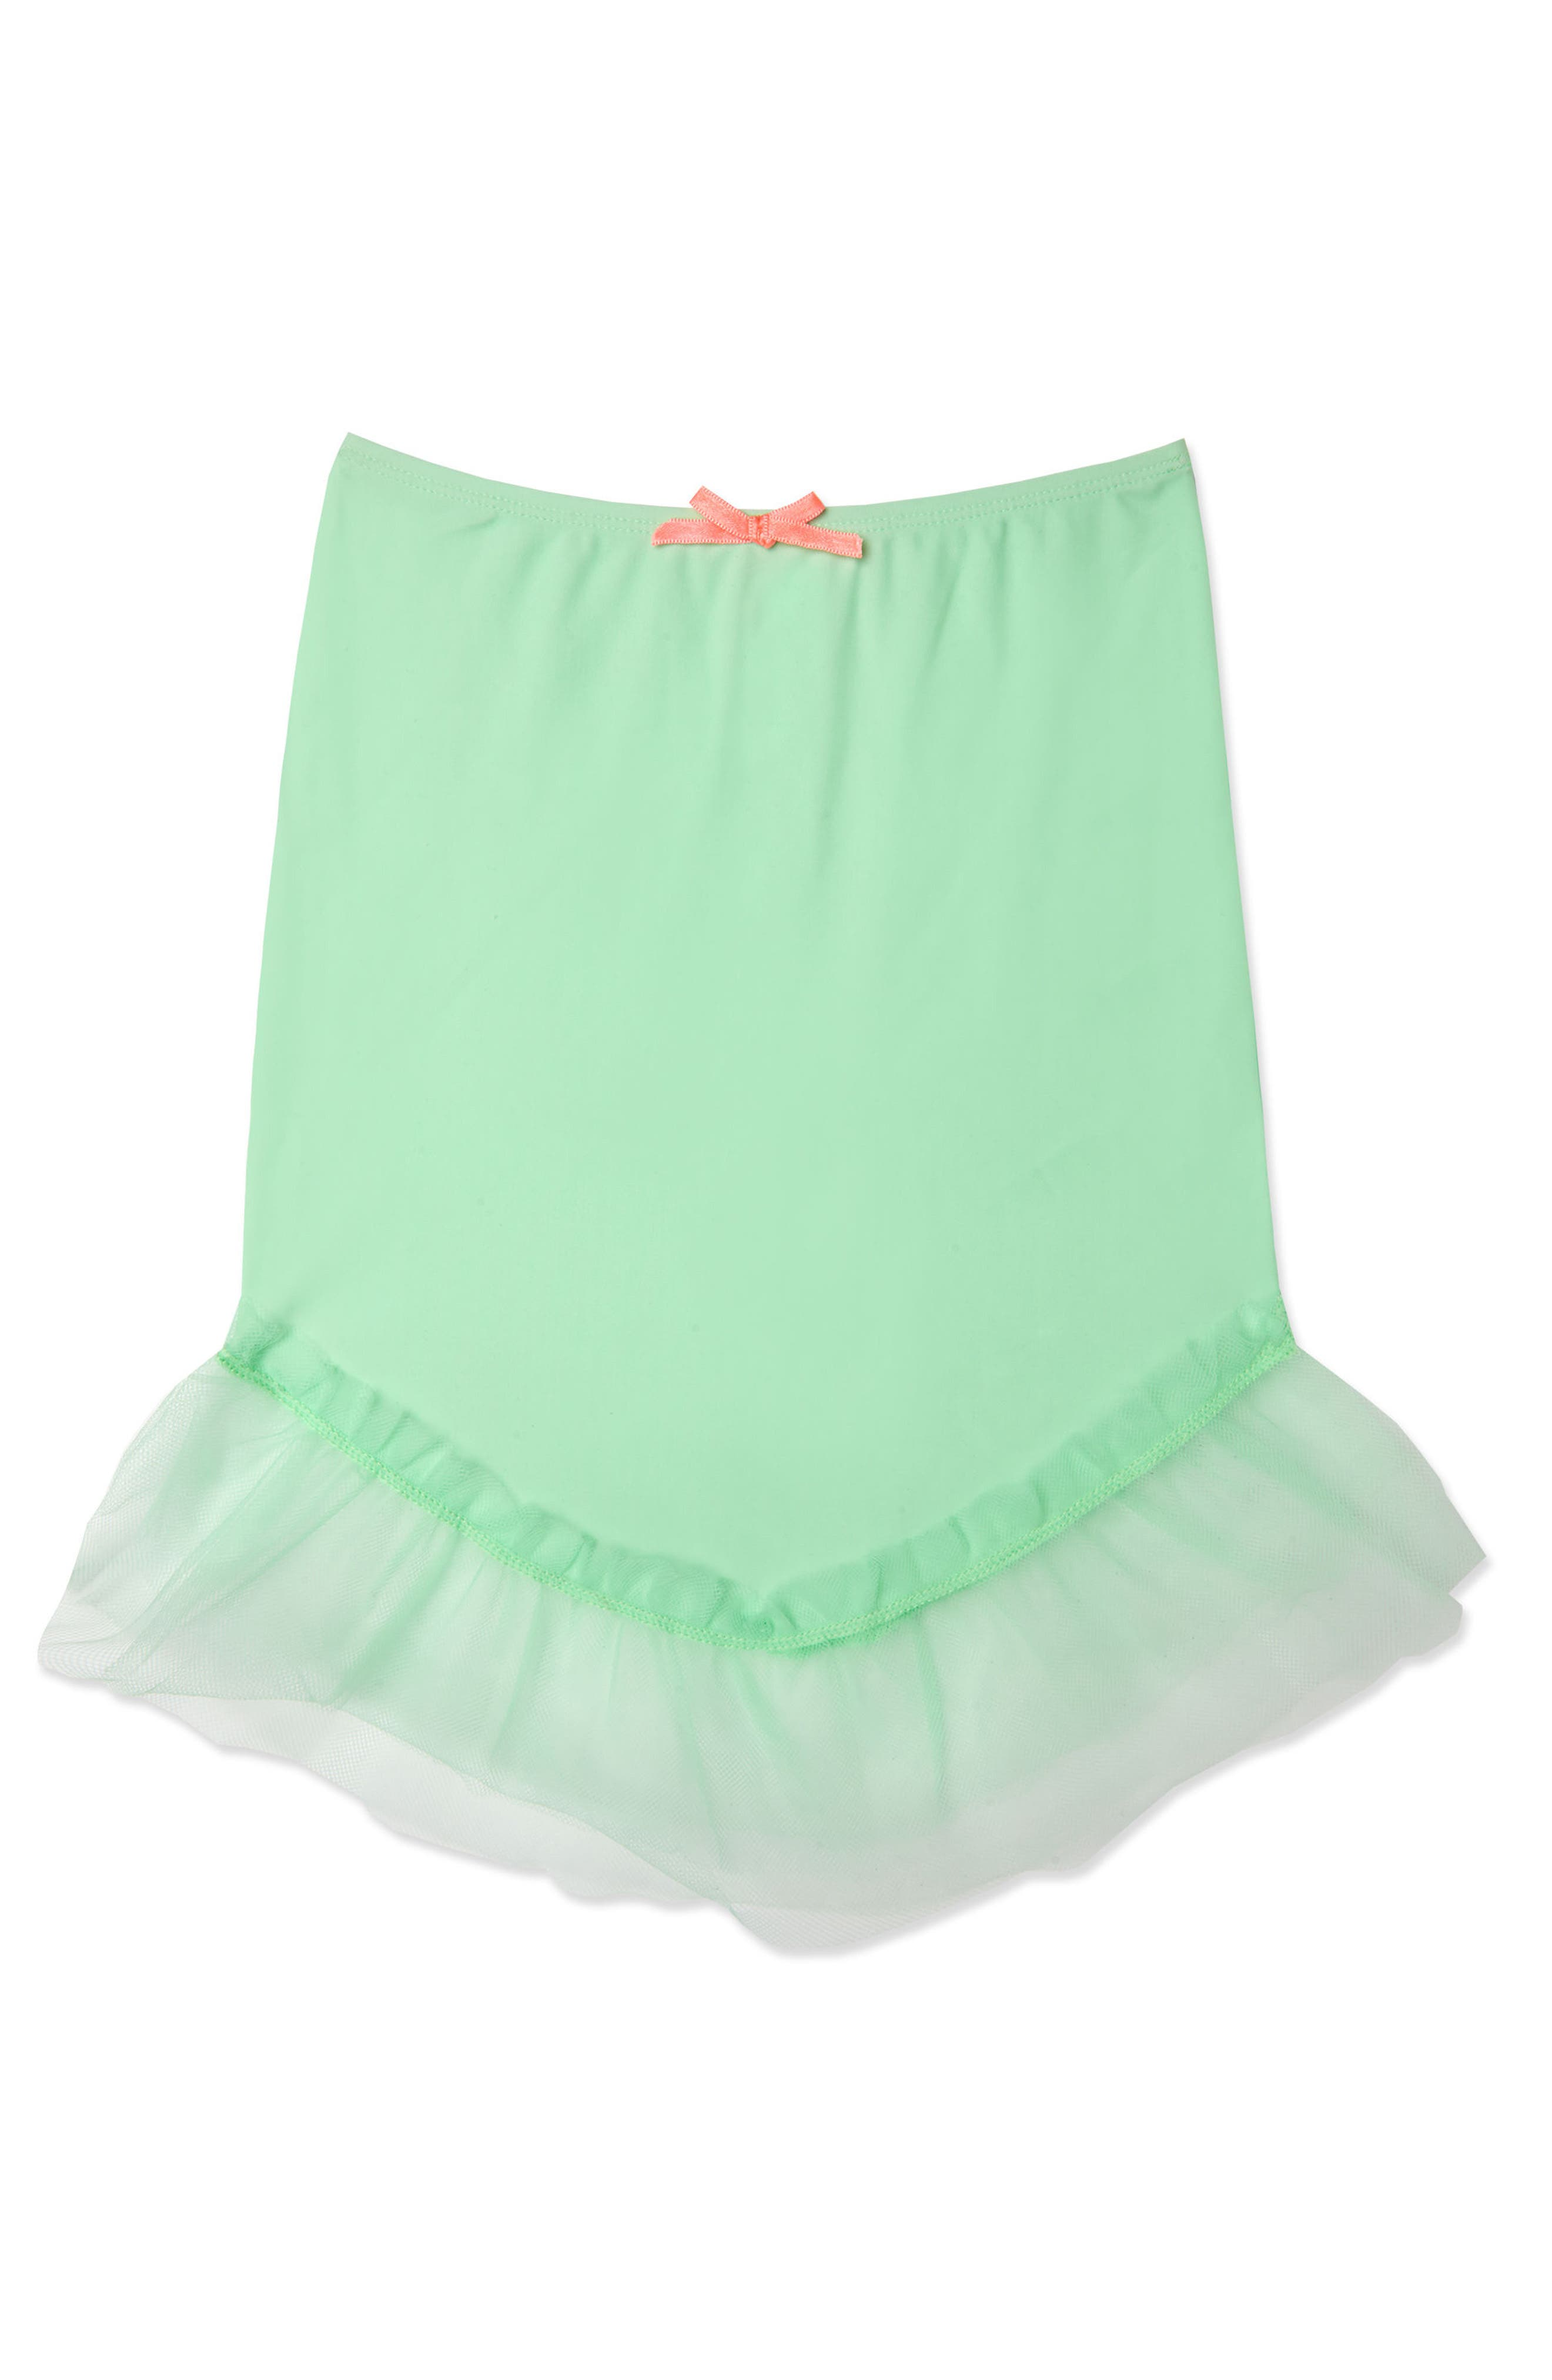 Hula Star Mermaid Cover-Up Skirt (Toddler Girls & Little Girls)